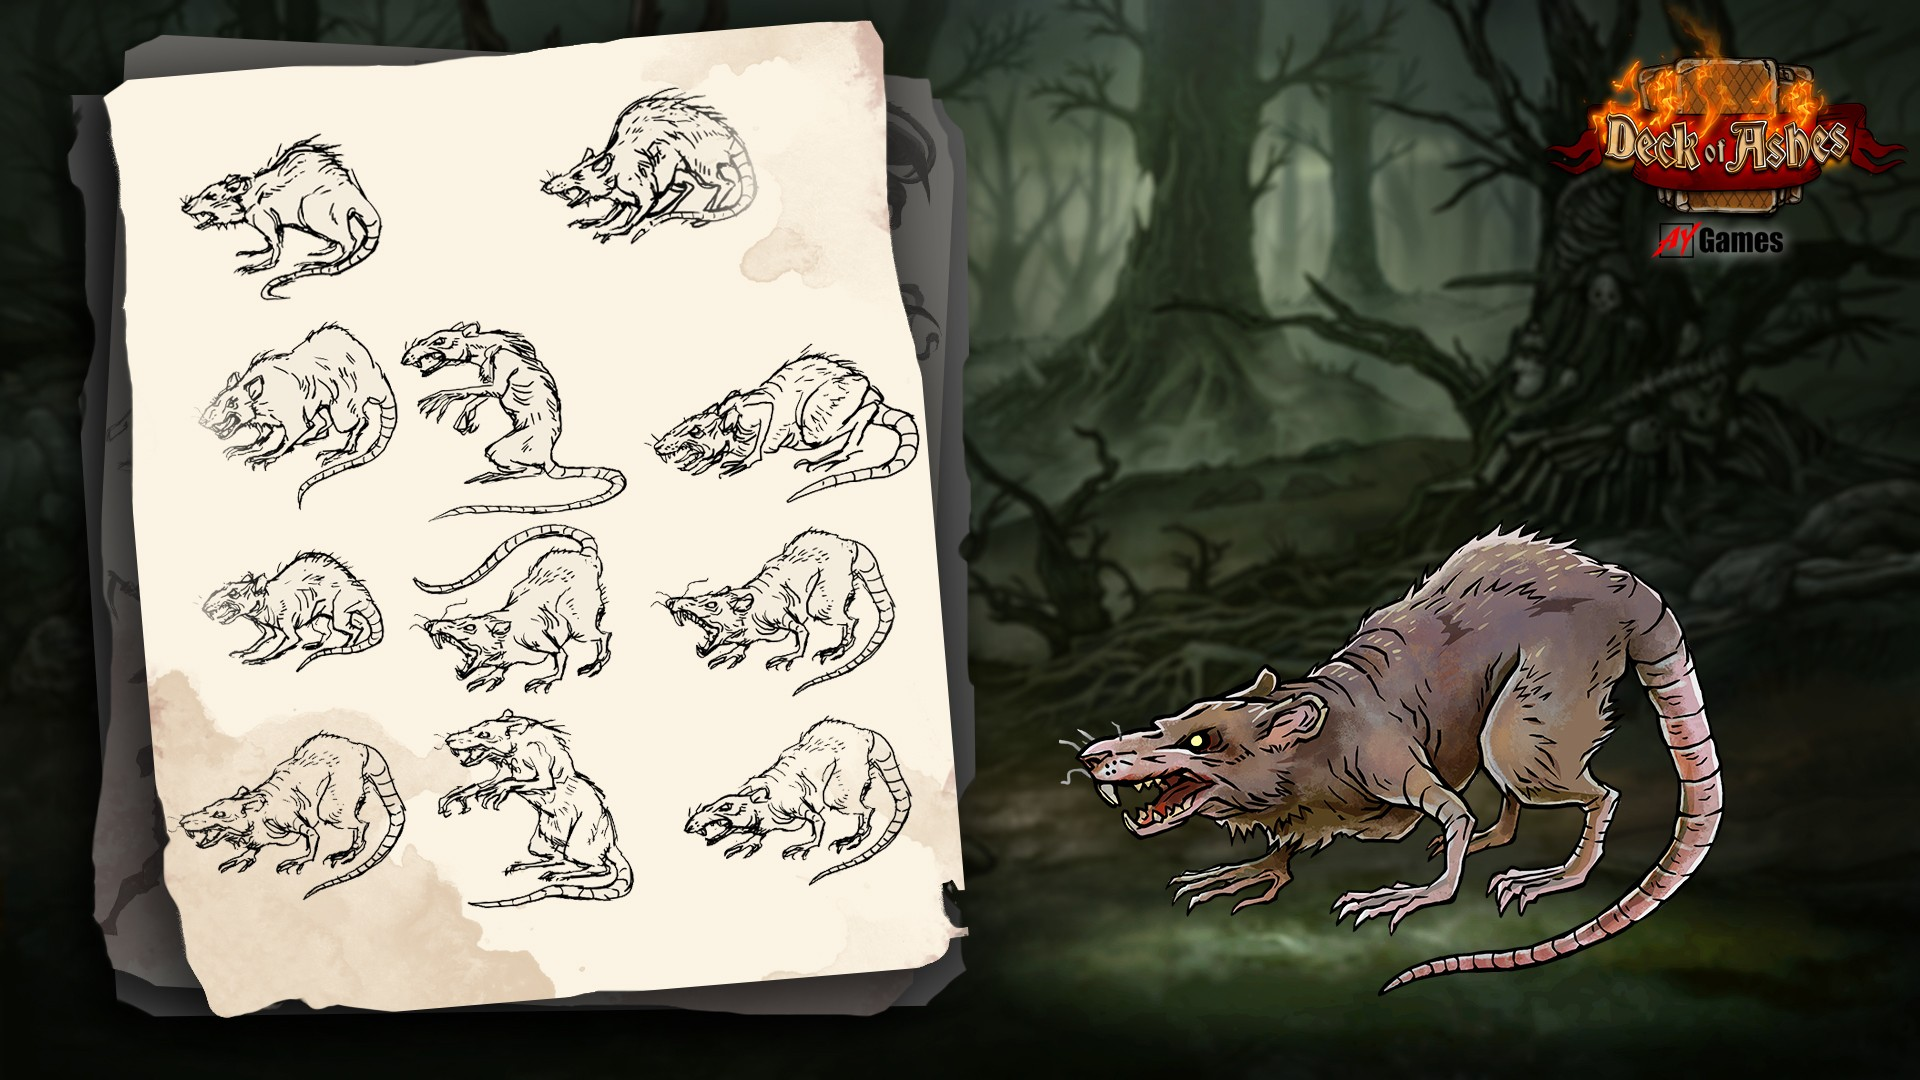 concept_rat.jpg - Deck of Ashes Арт